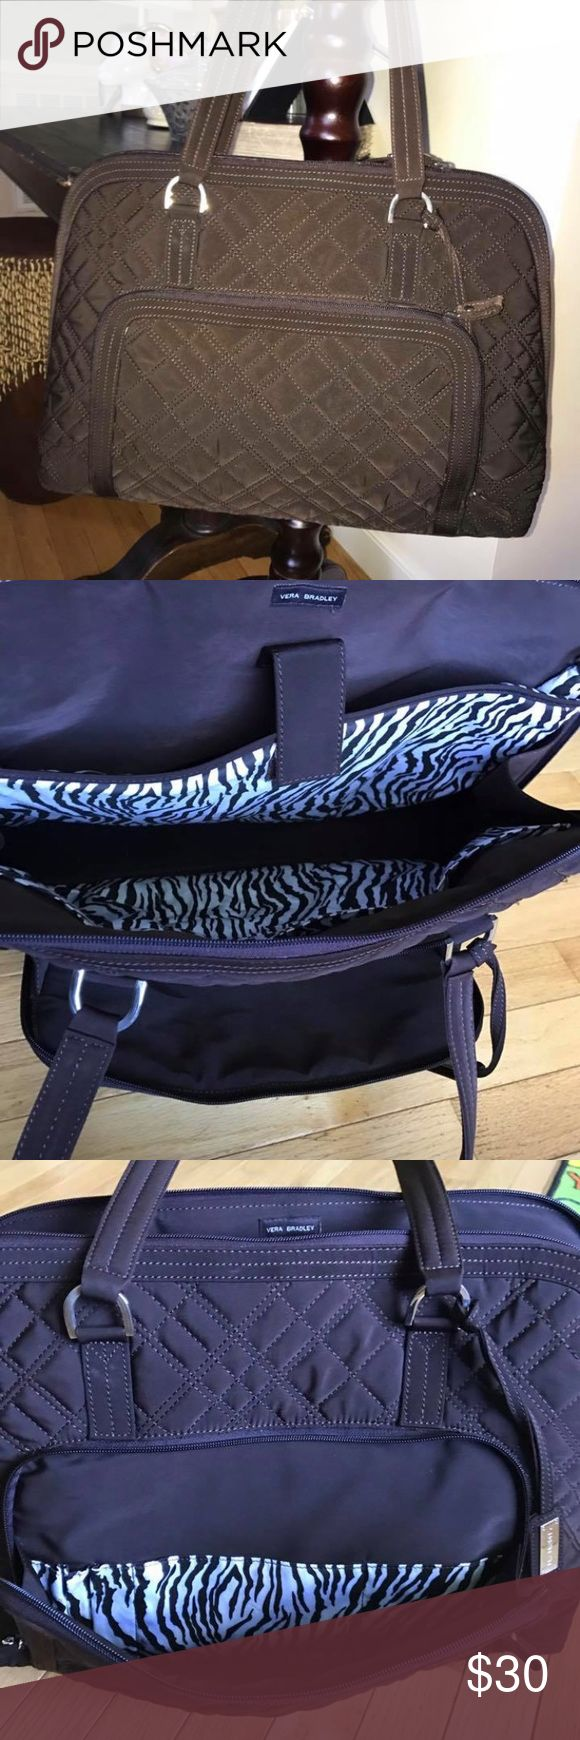 Espresso Brown Vera Bradley Laptop Bag In excellent condition.  Small stitching on the bottom corner that is not very noticeable when wearing! Vera Bradley Bags Laptop Bags